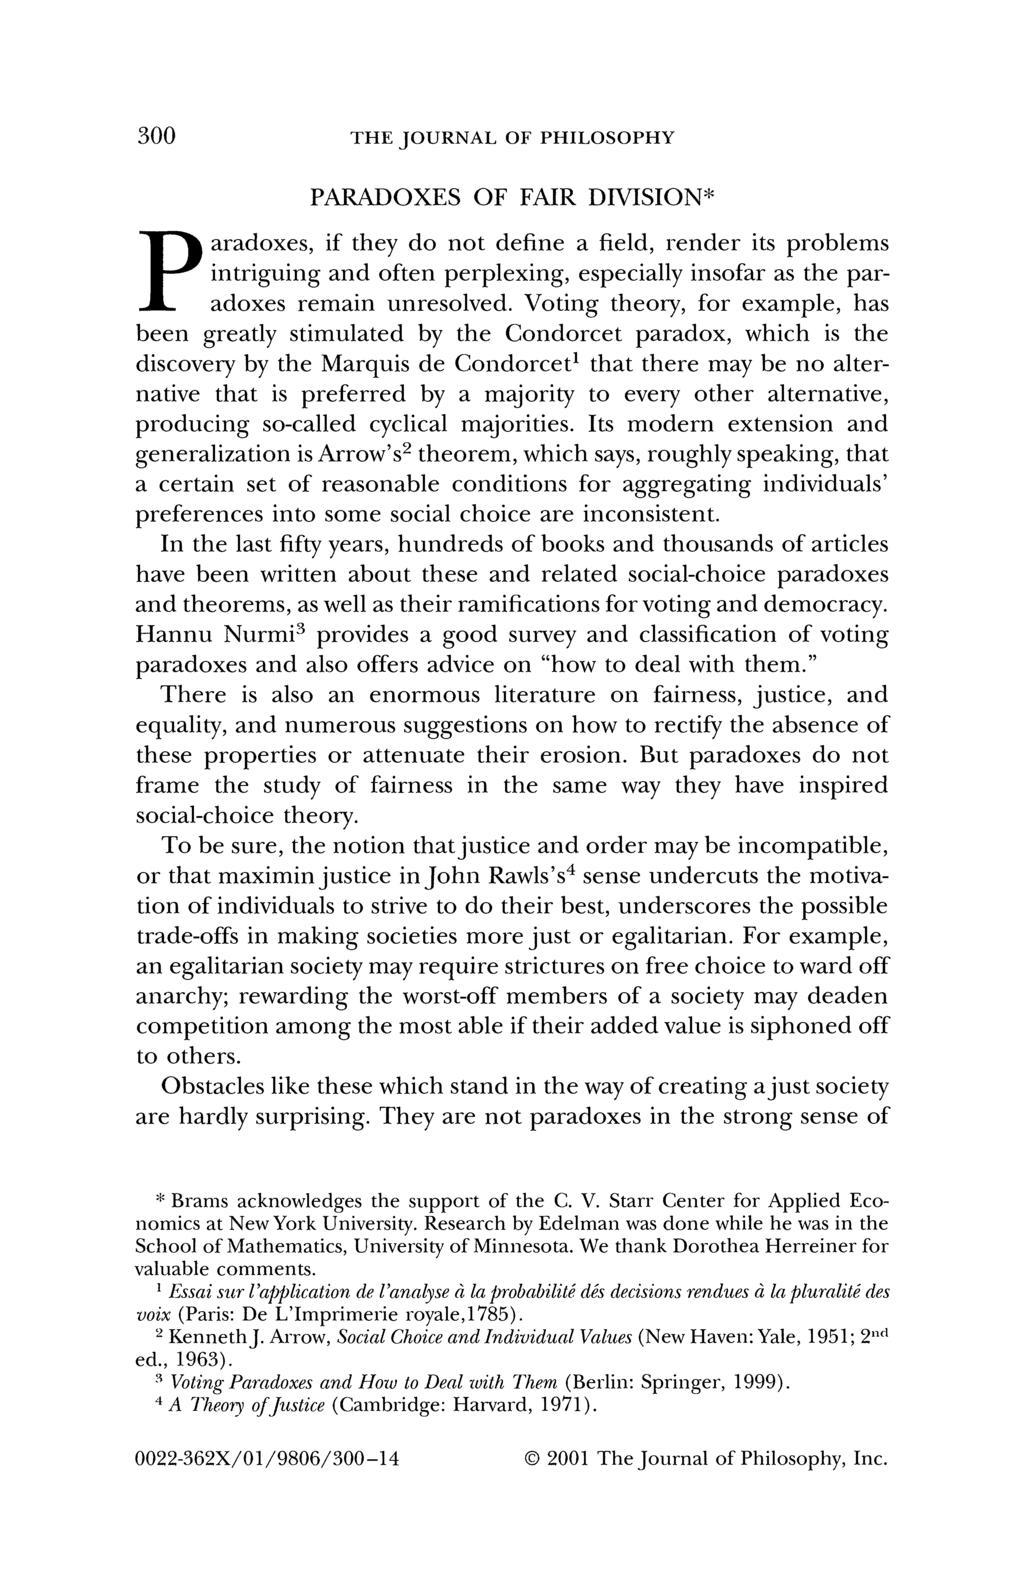 300 THE JOURNAL OF PHILOSOPHY PARADOXES OF FAIR DIVISION* P aradoxes, if they do not define a field, render its problems intriguing and often perplexing, especially insofar as the paradoxes remain